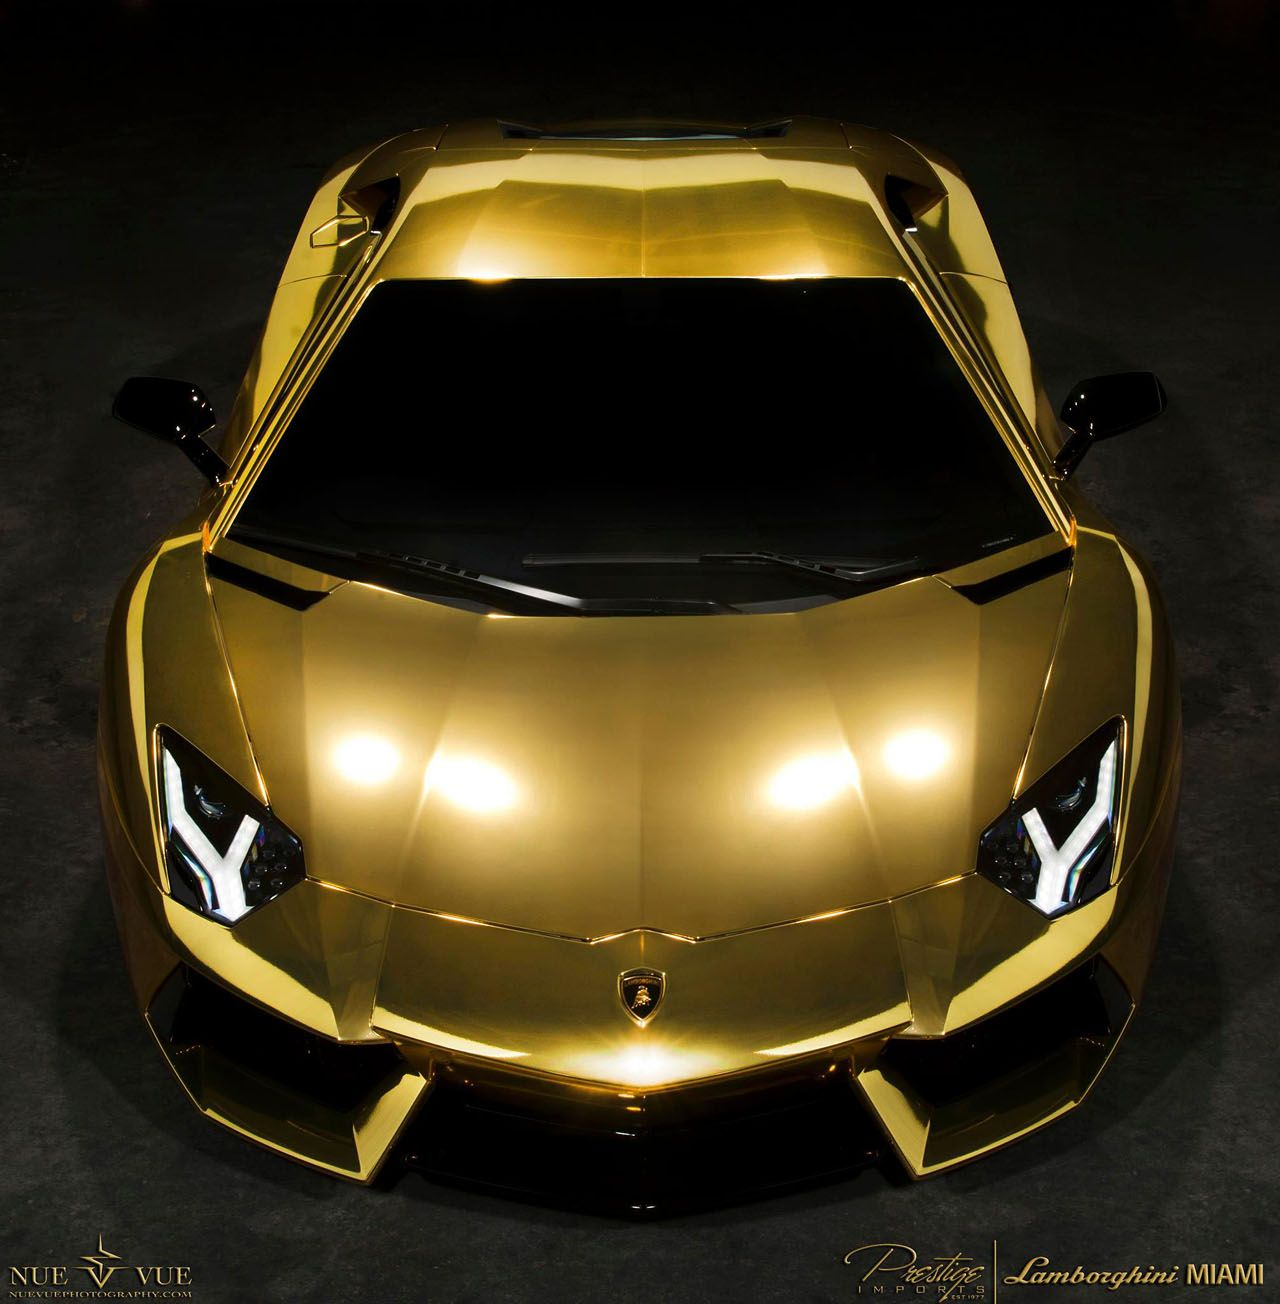 Best 30 Luxury Porsche Sport Cars Collections: Gold Lamborghini, Lamborghini Aventador